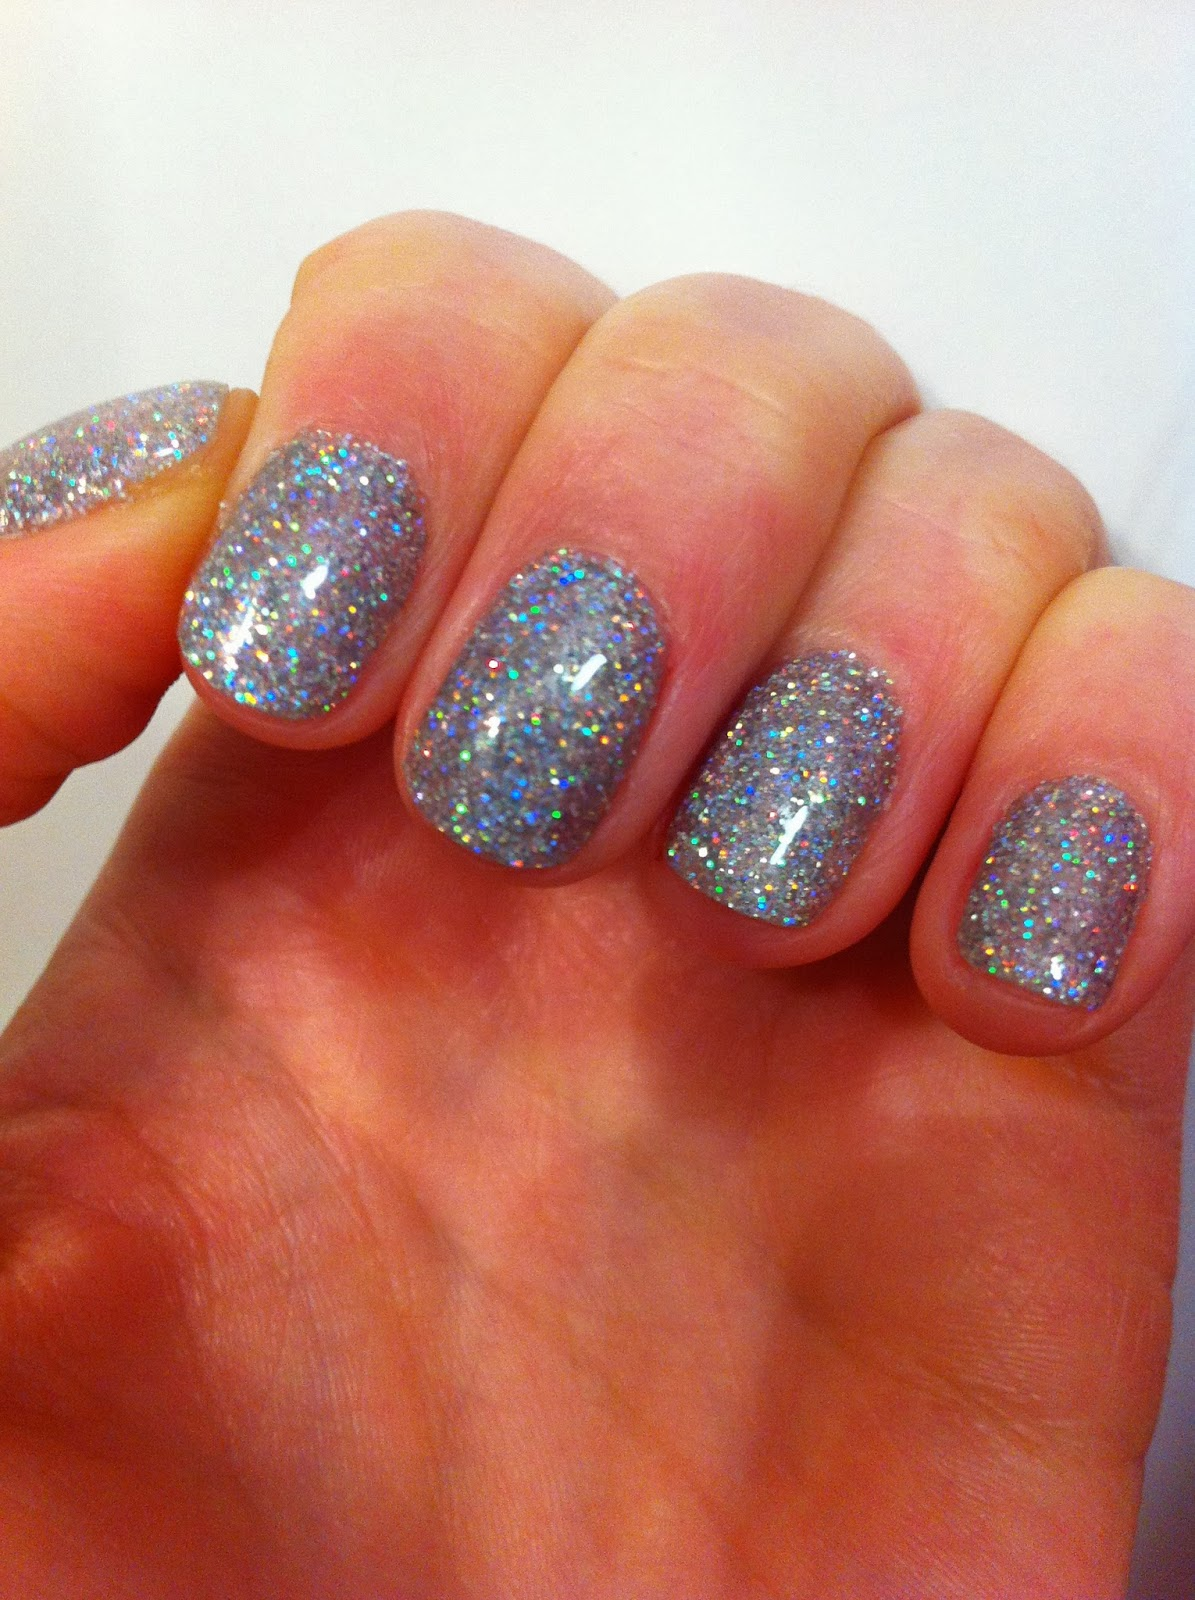 Sparkly gel nails - Expression Nails